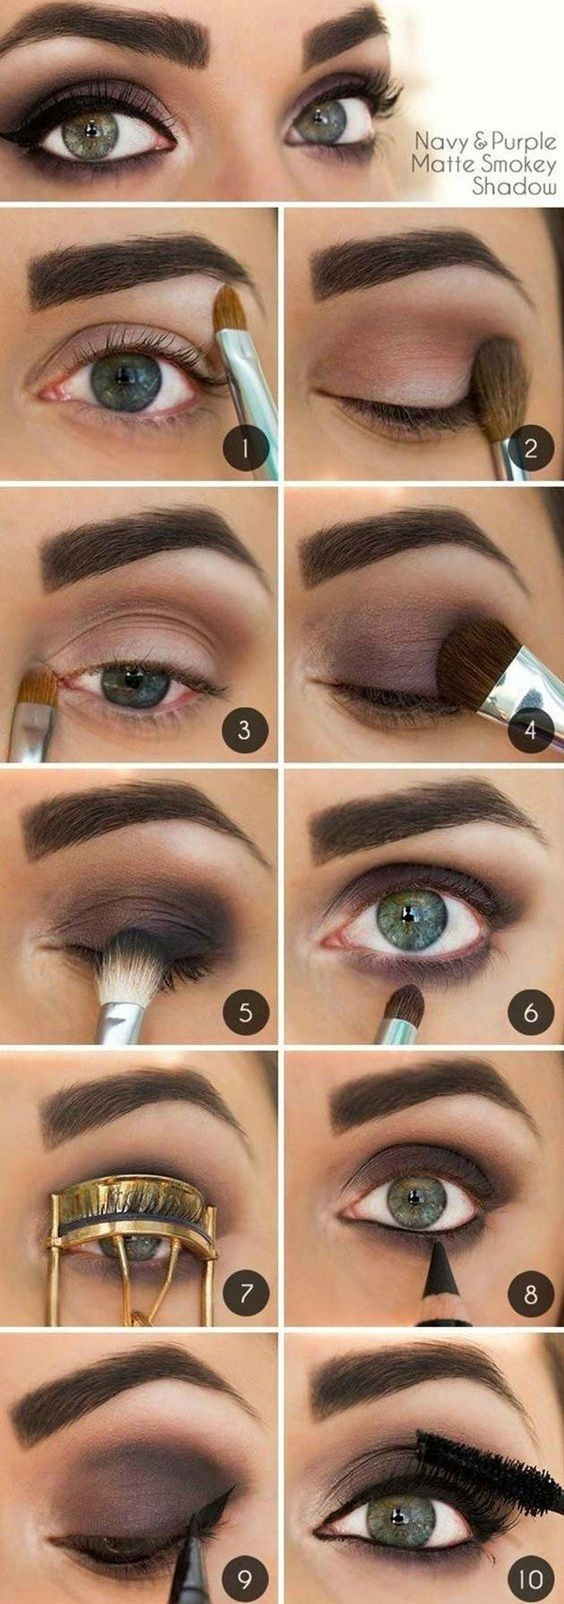 10 Step By Step Makeup Tutorials For Green Eyes - Her Style Code with How To Apply Makeup For Green Eyes And Brown Hair